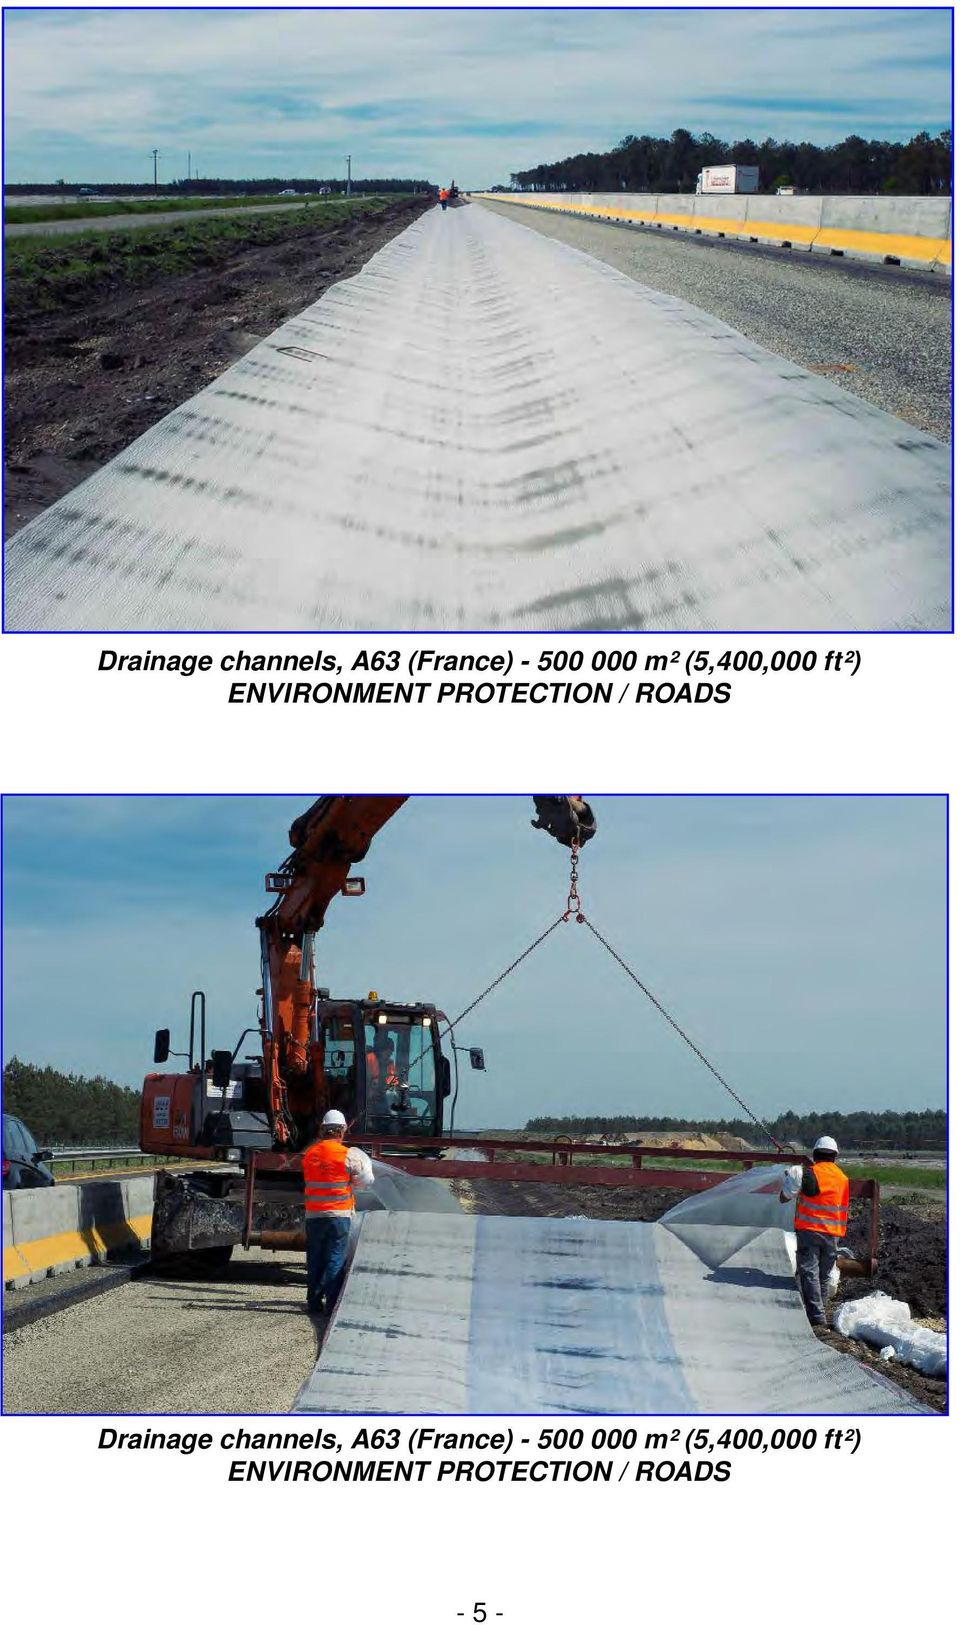 PROTECTION // ROADS ROUTES Drainage channels, Cunettes, A63 A63 (France) - 500 000